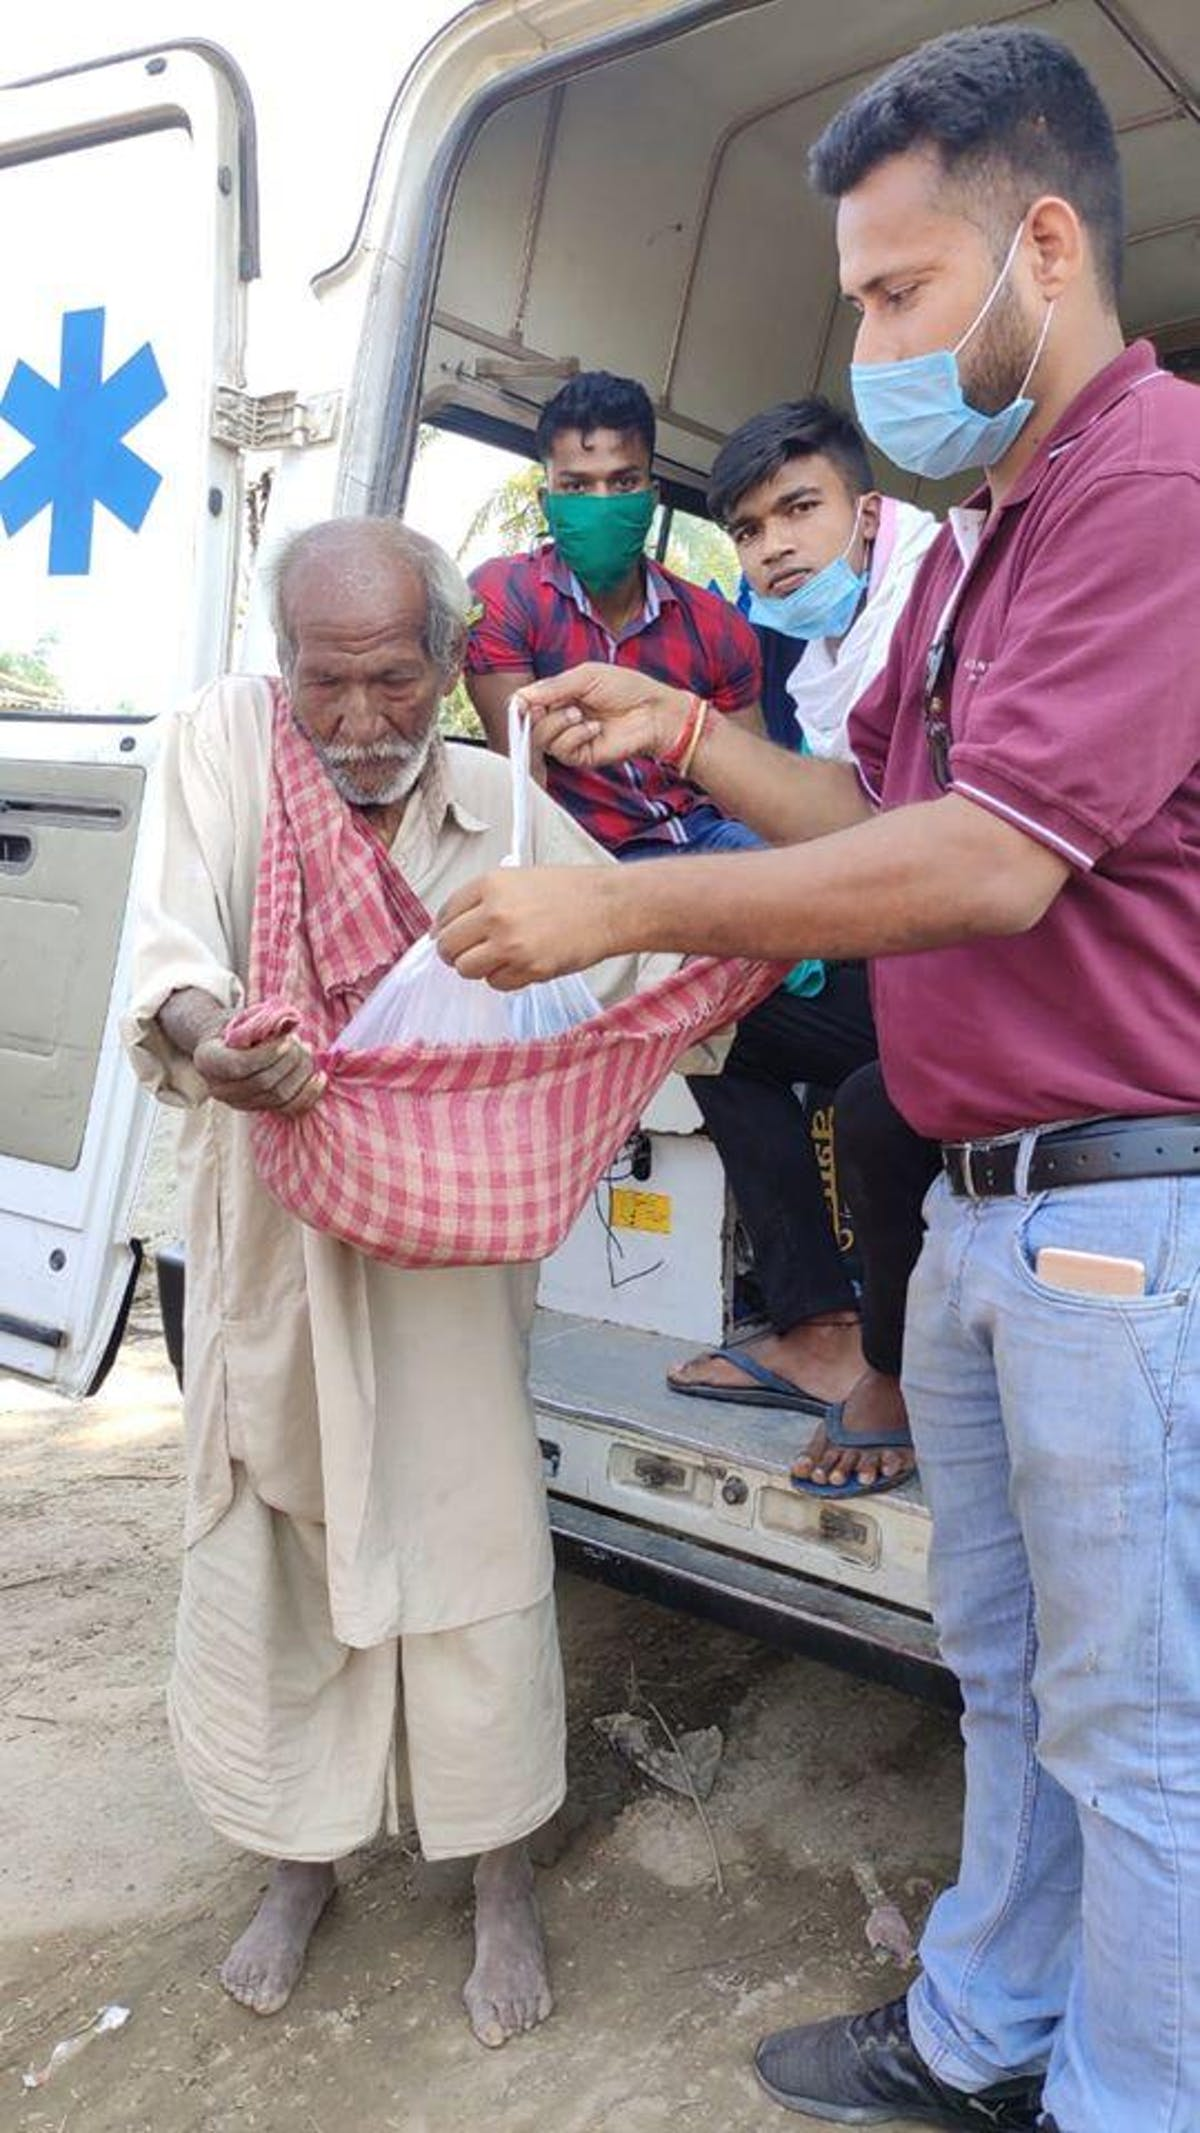 A man accepts a food package from the team at Akhand Jyoti Eye Hospital in Bihar, India